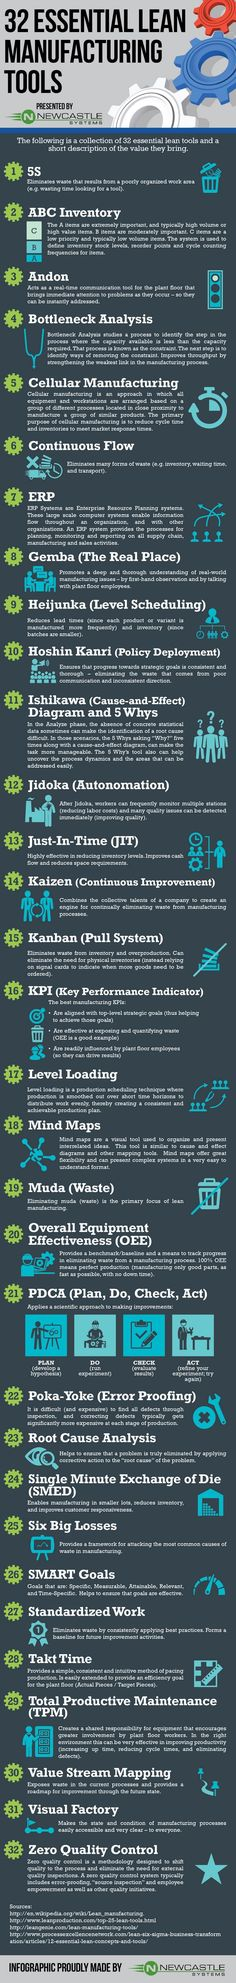 32 Essential Lean Manufacturing Tools [infographic]